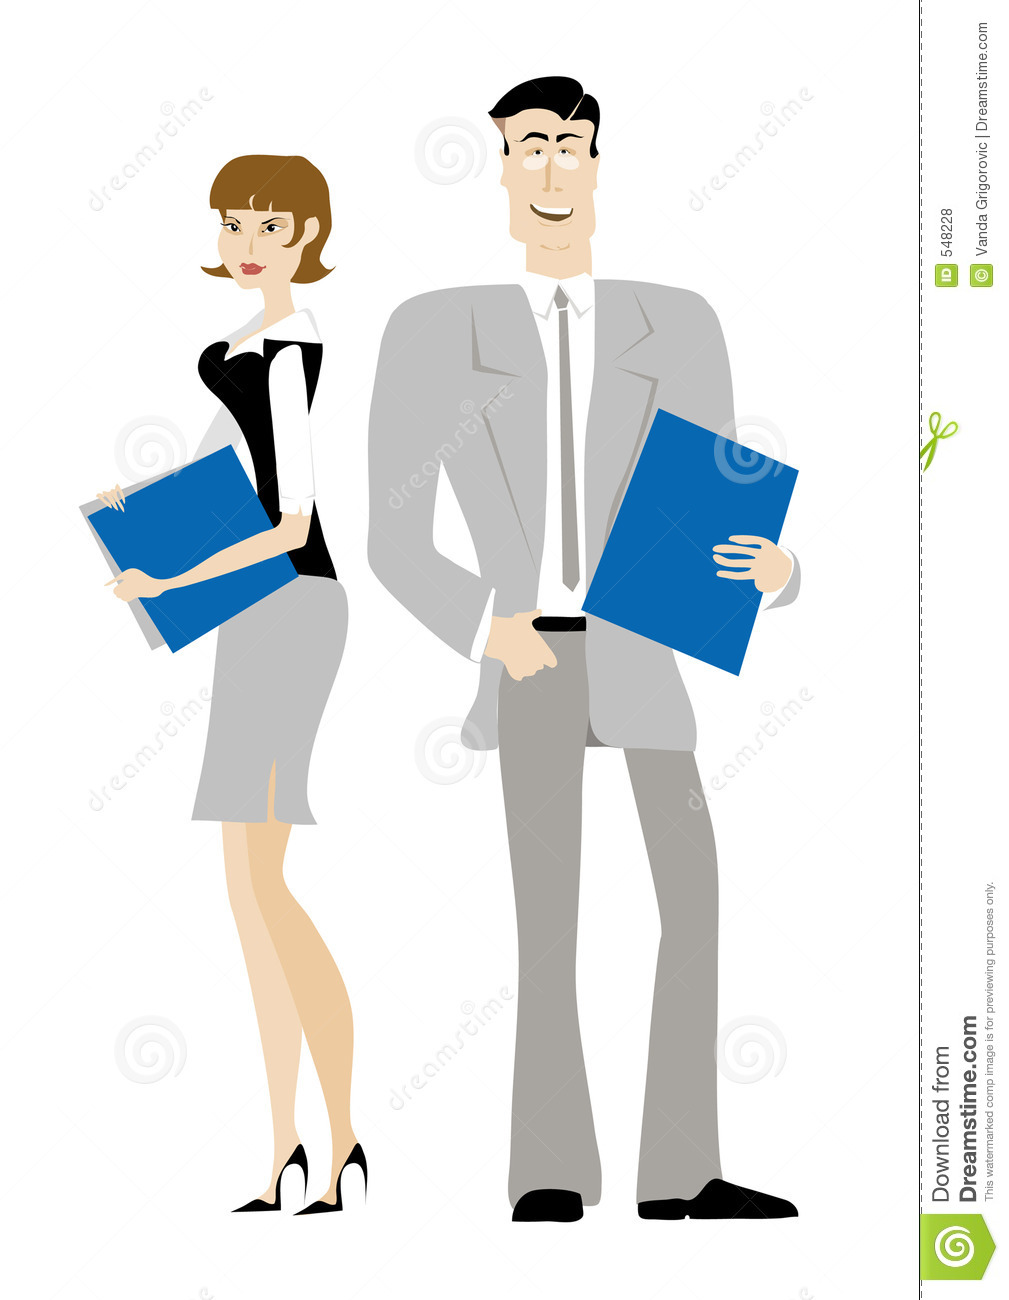 Office clipart office lady Office Royalty office Lady Clipart